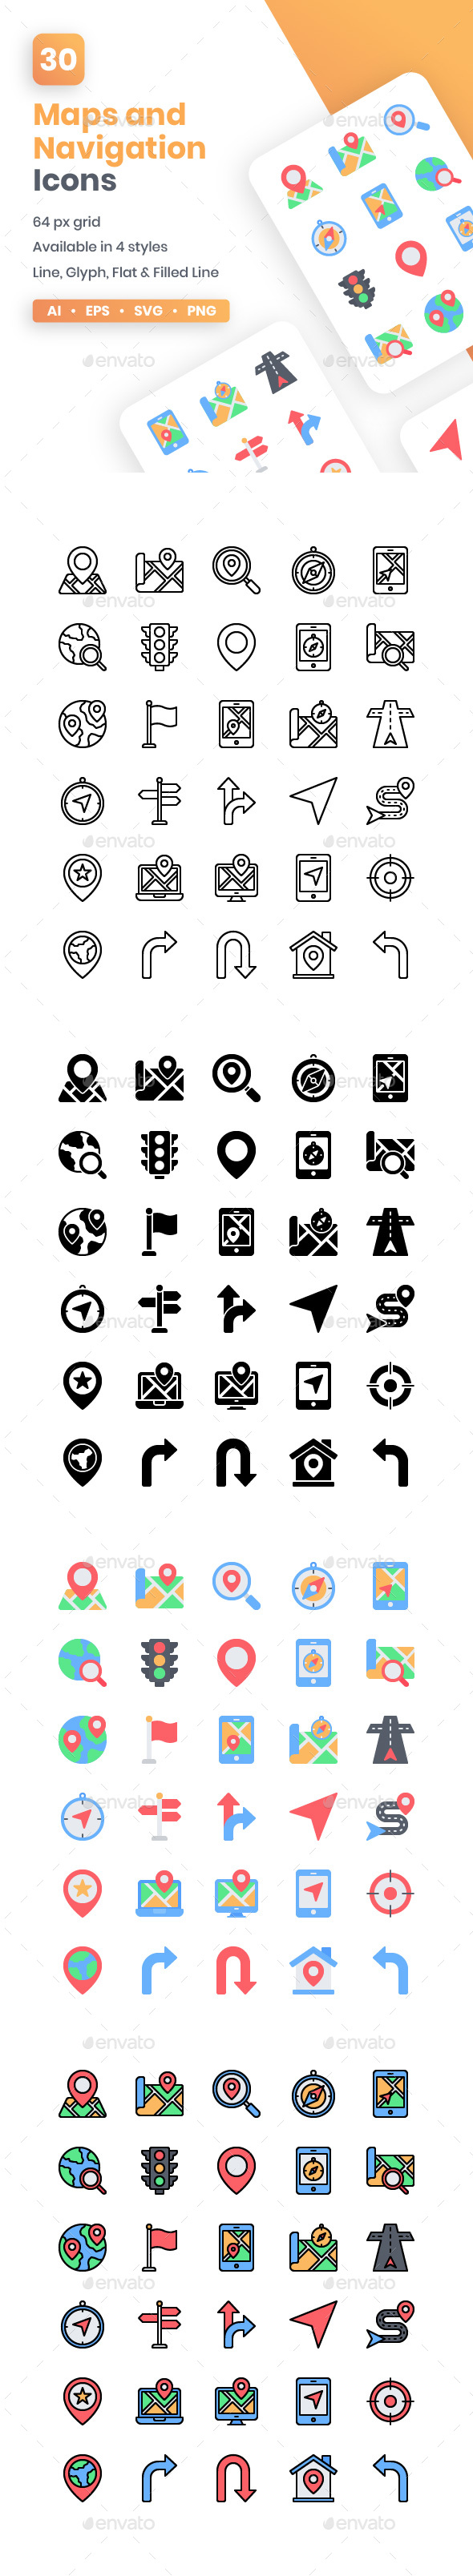 Maps And Navigation Icons